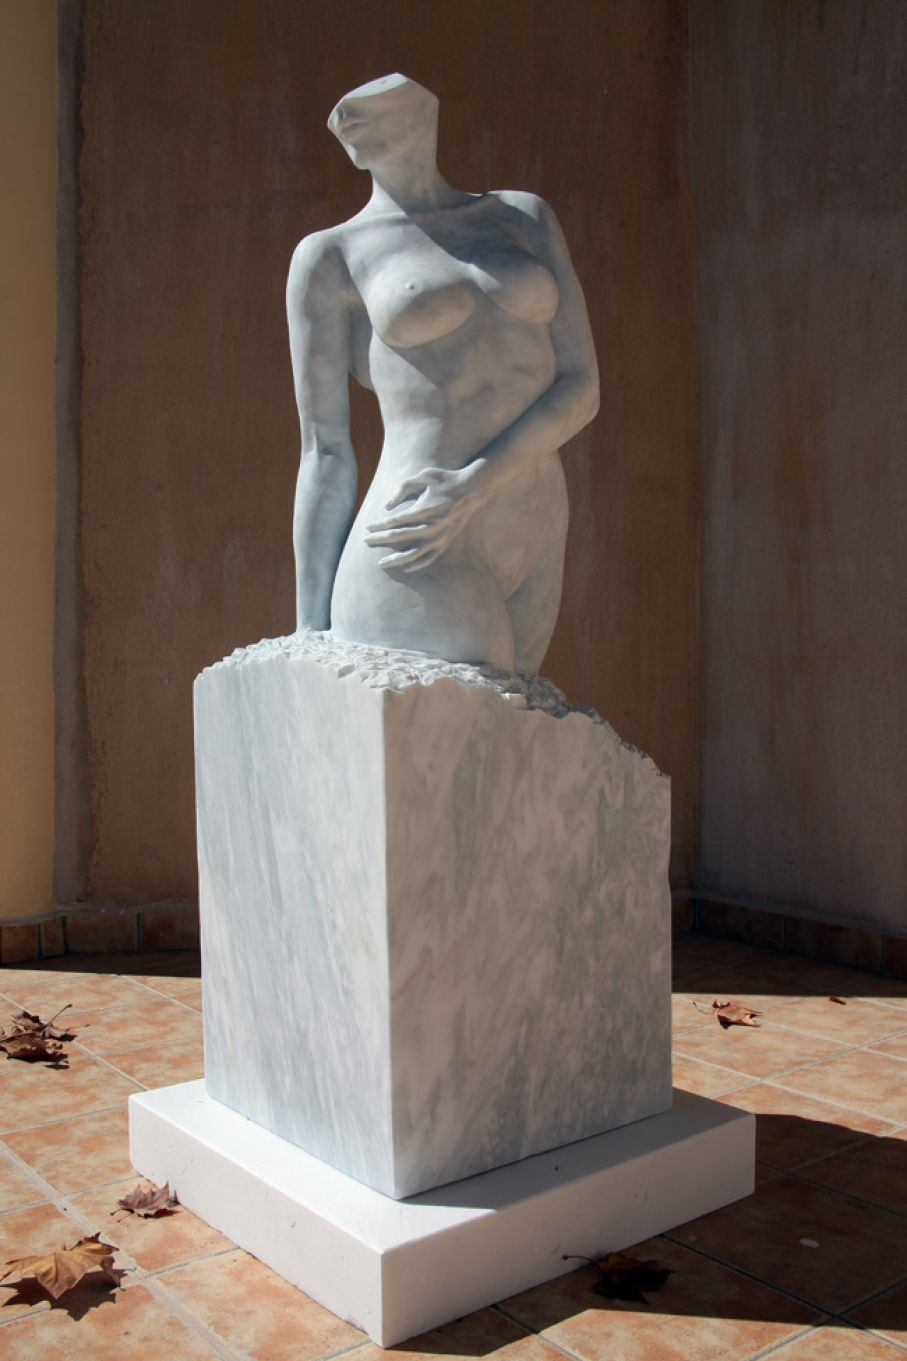 "Original marble sculpture of Sherry Tipton, completed on August 2013, within Myrό Antiques House premises, in Souroti, Thessaloniki, GREECE, as part of the Greek Marble Initiative, bearing the title ""Serenity"". Dimensions: 153 X 50 X 50 (with its base)."